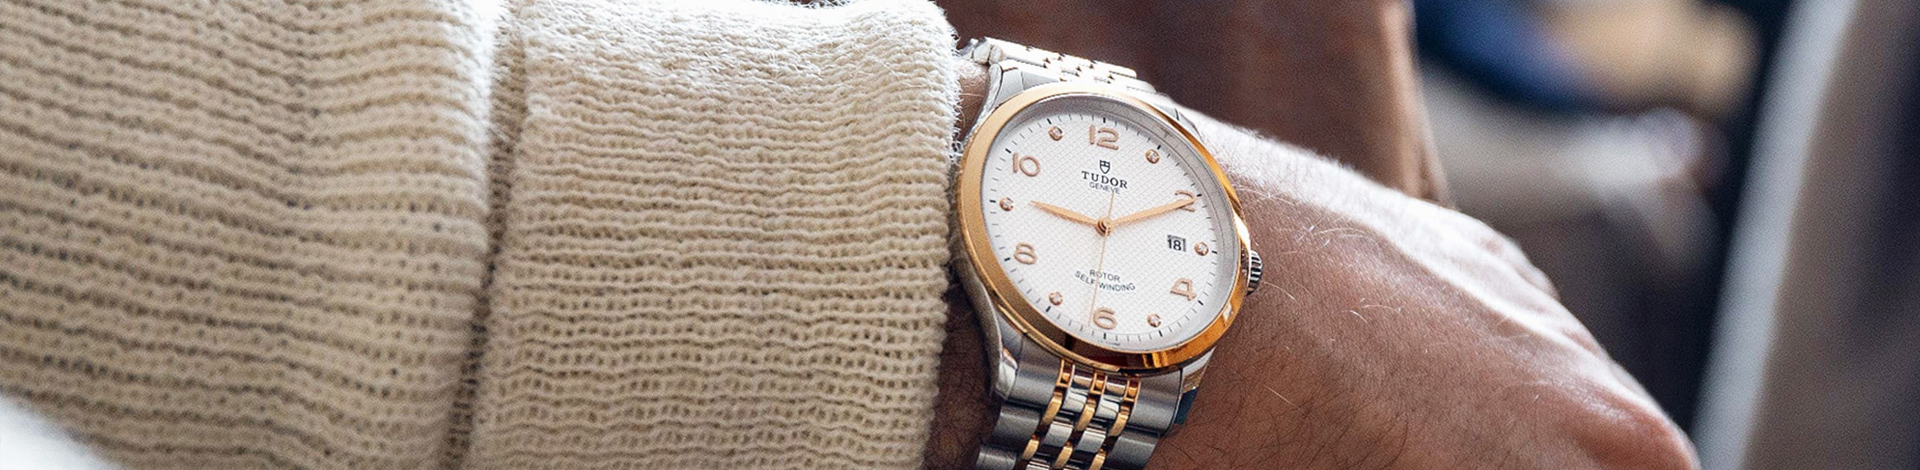 TUDOR 1926 - THE TIMELESS, VINTAGE INSPIRED EVERYDAY WATCH article hero image